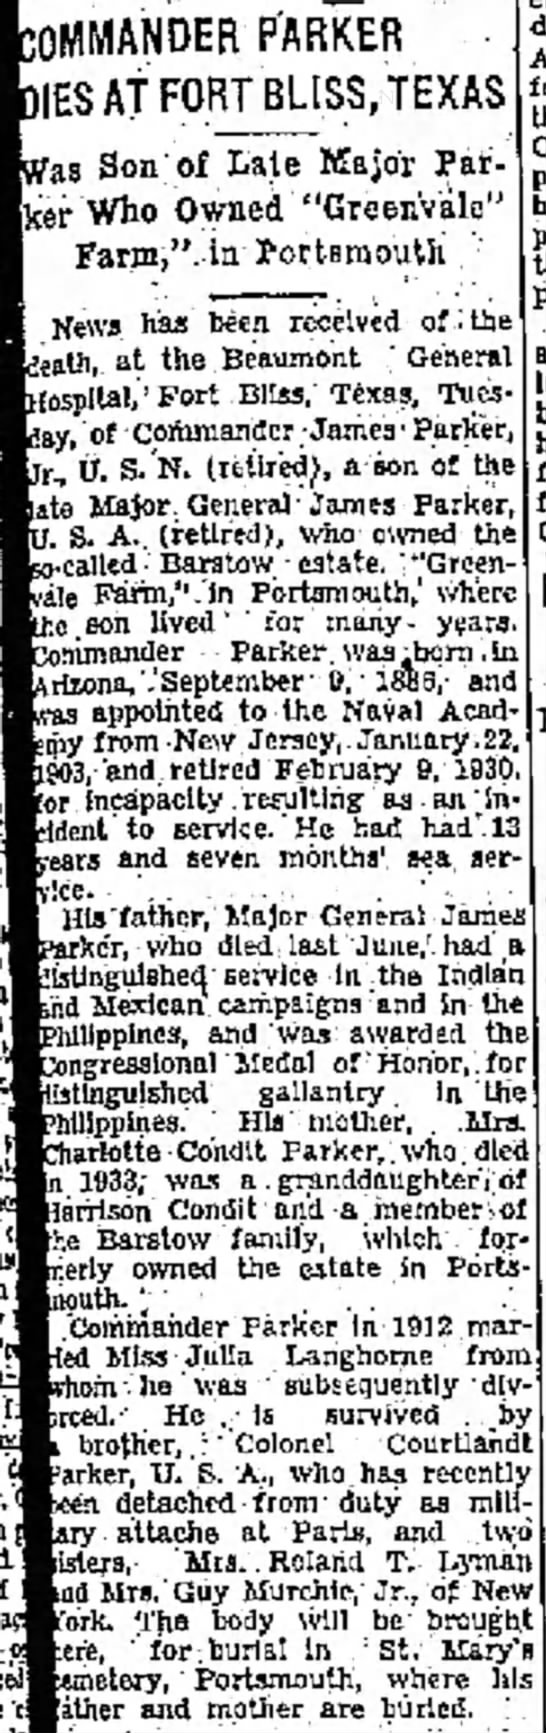 Mrs Guy Murchie's Jr family is from Portsmouth region - COMMANDER PARKER DIES AT FORT BLISS, is Son of...